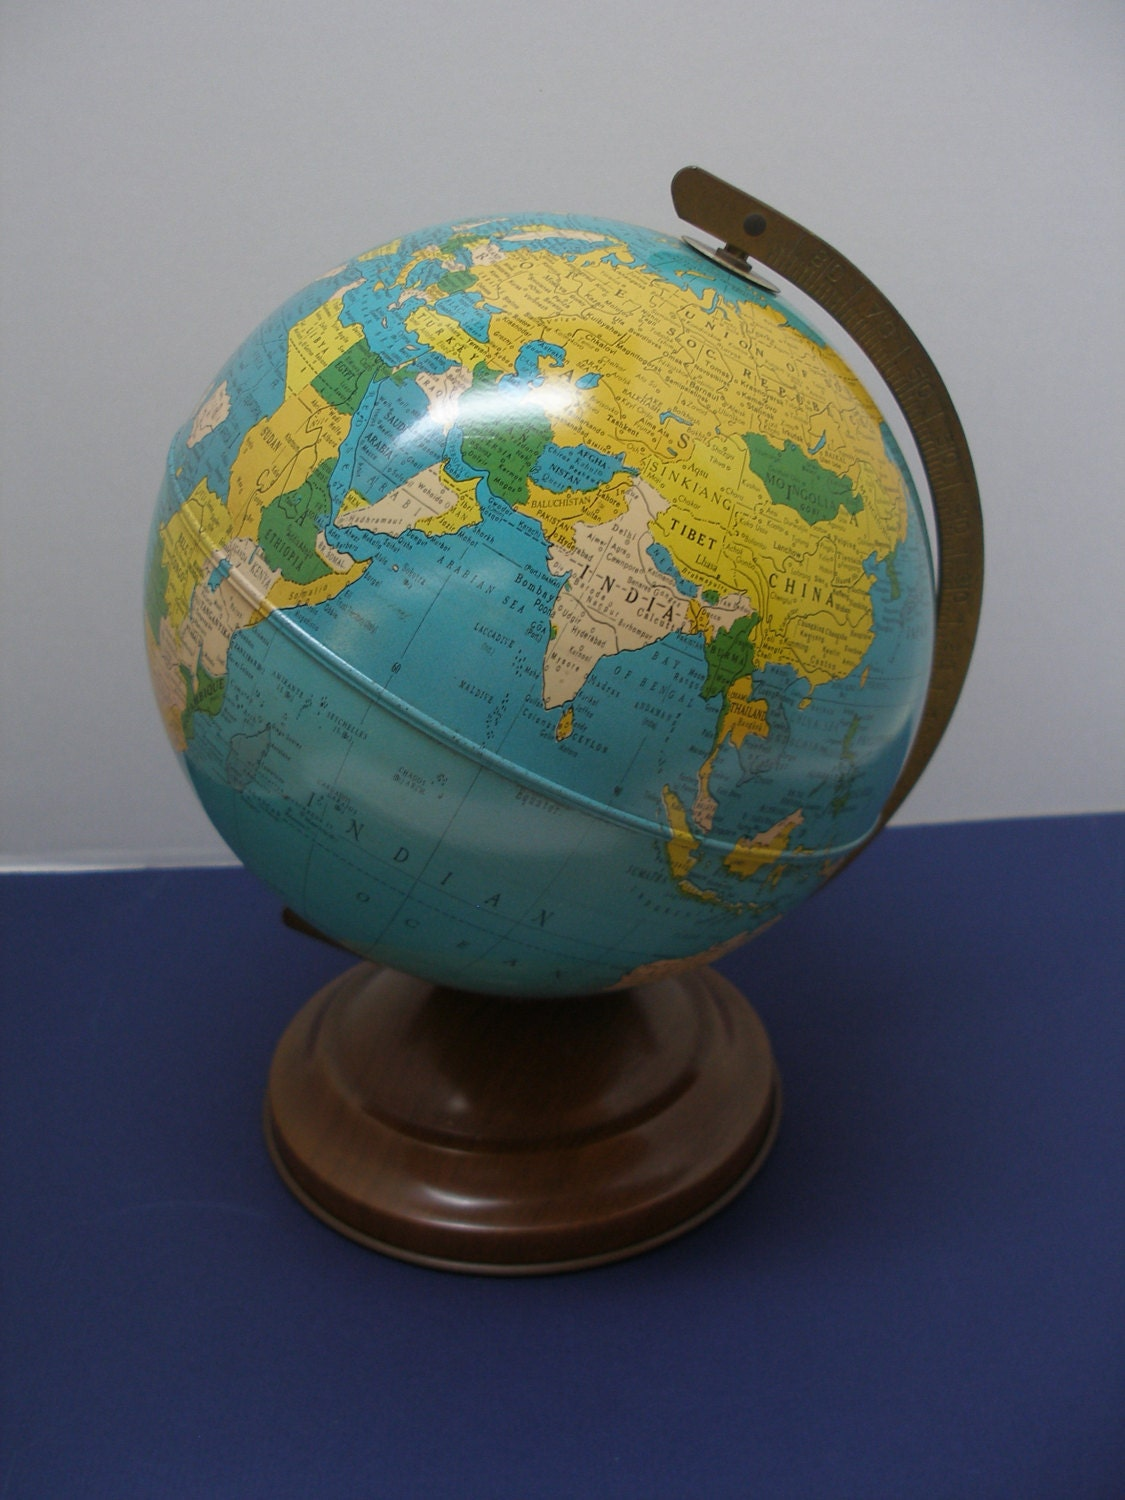 globe dating replogle Quirky collections: vintage tin globe banks  there are websites that can help with dating globes omniterrum and replogle globes are two that i've used.